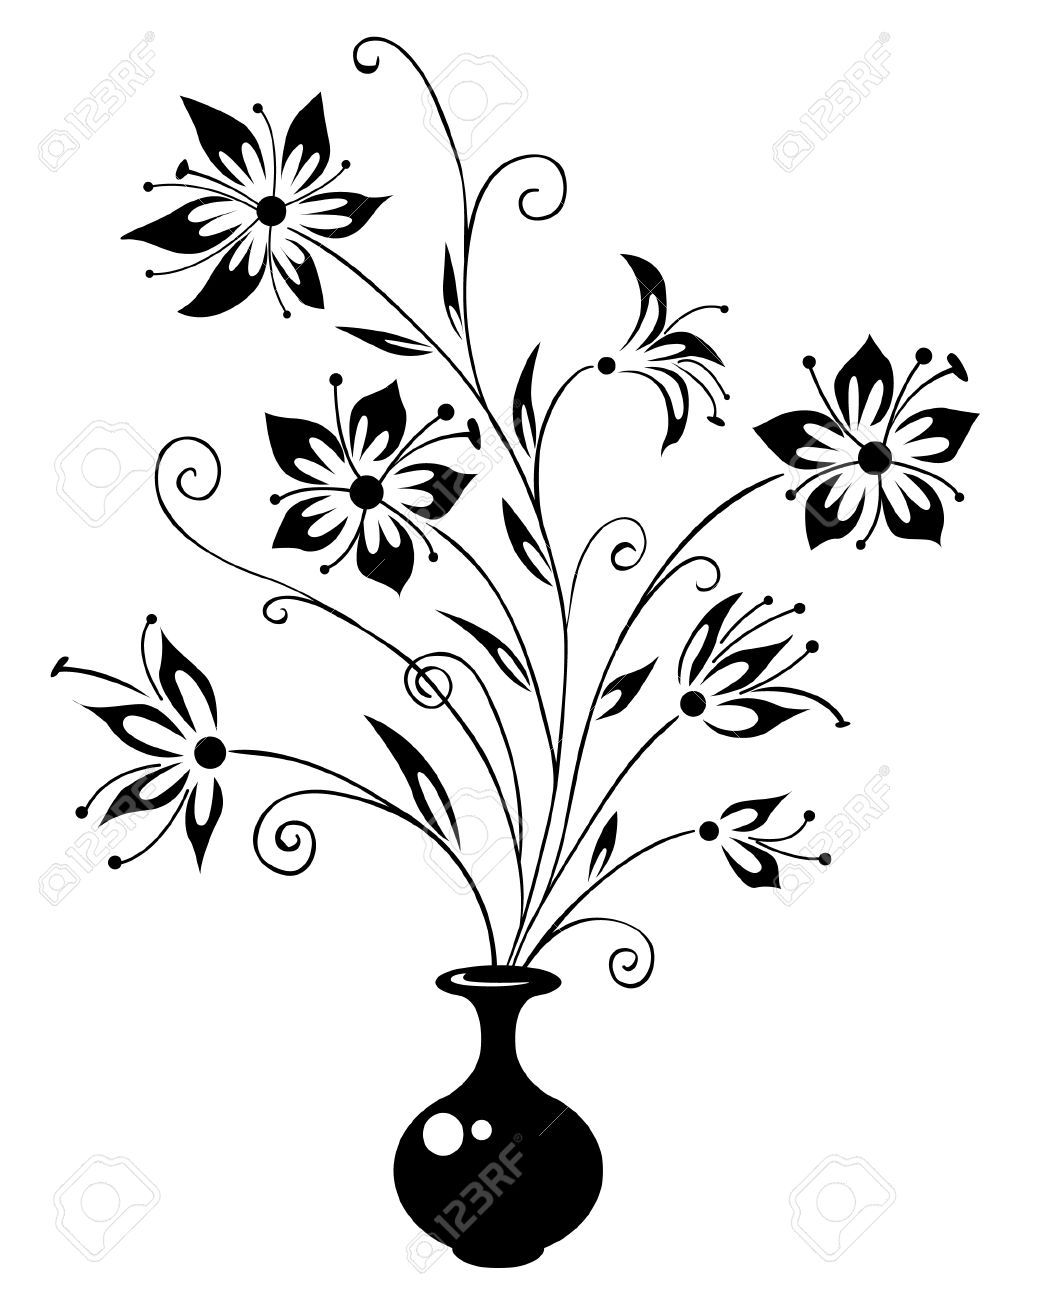 how to draw a bouquet of flowers in a vase the 25 best flower bouquet drawing ideas on pinterest how to a draw flowers of vase bouquet in a